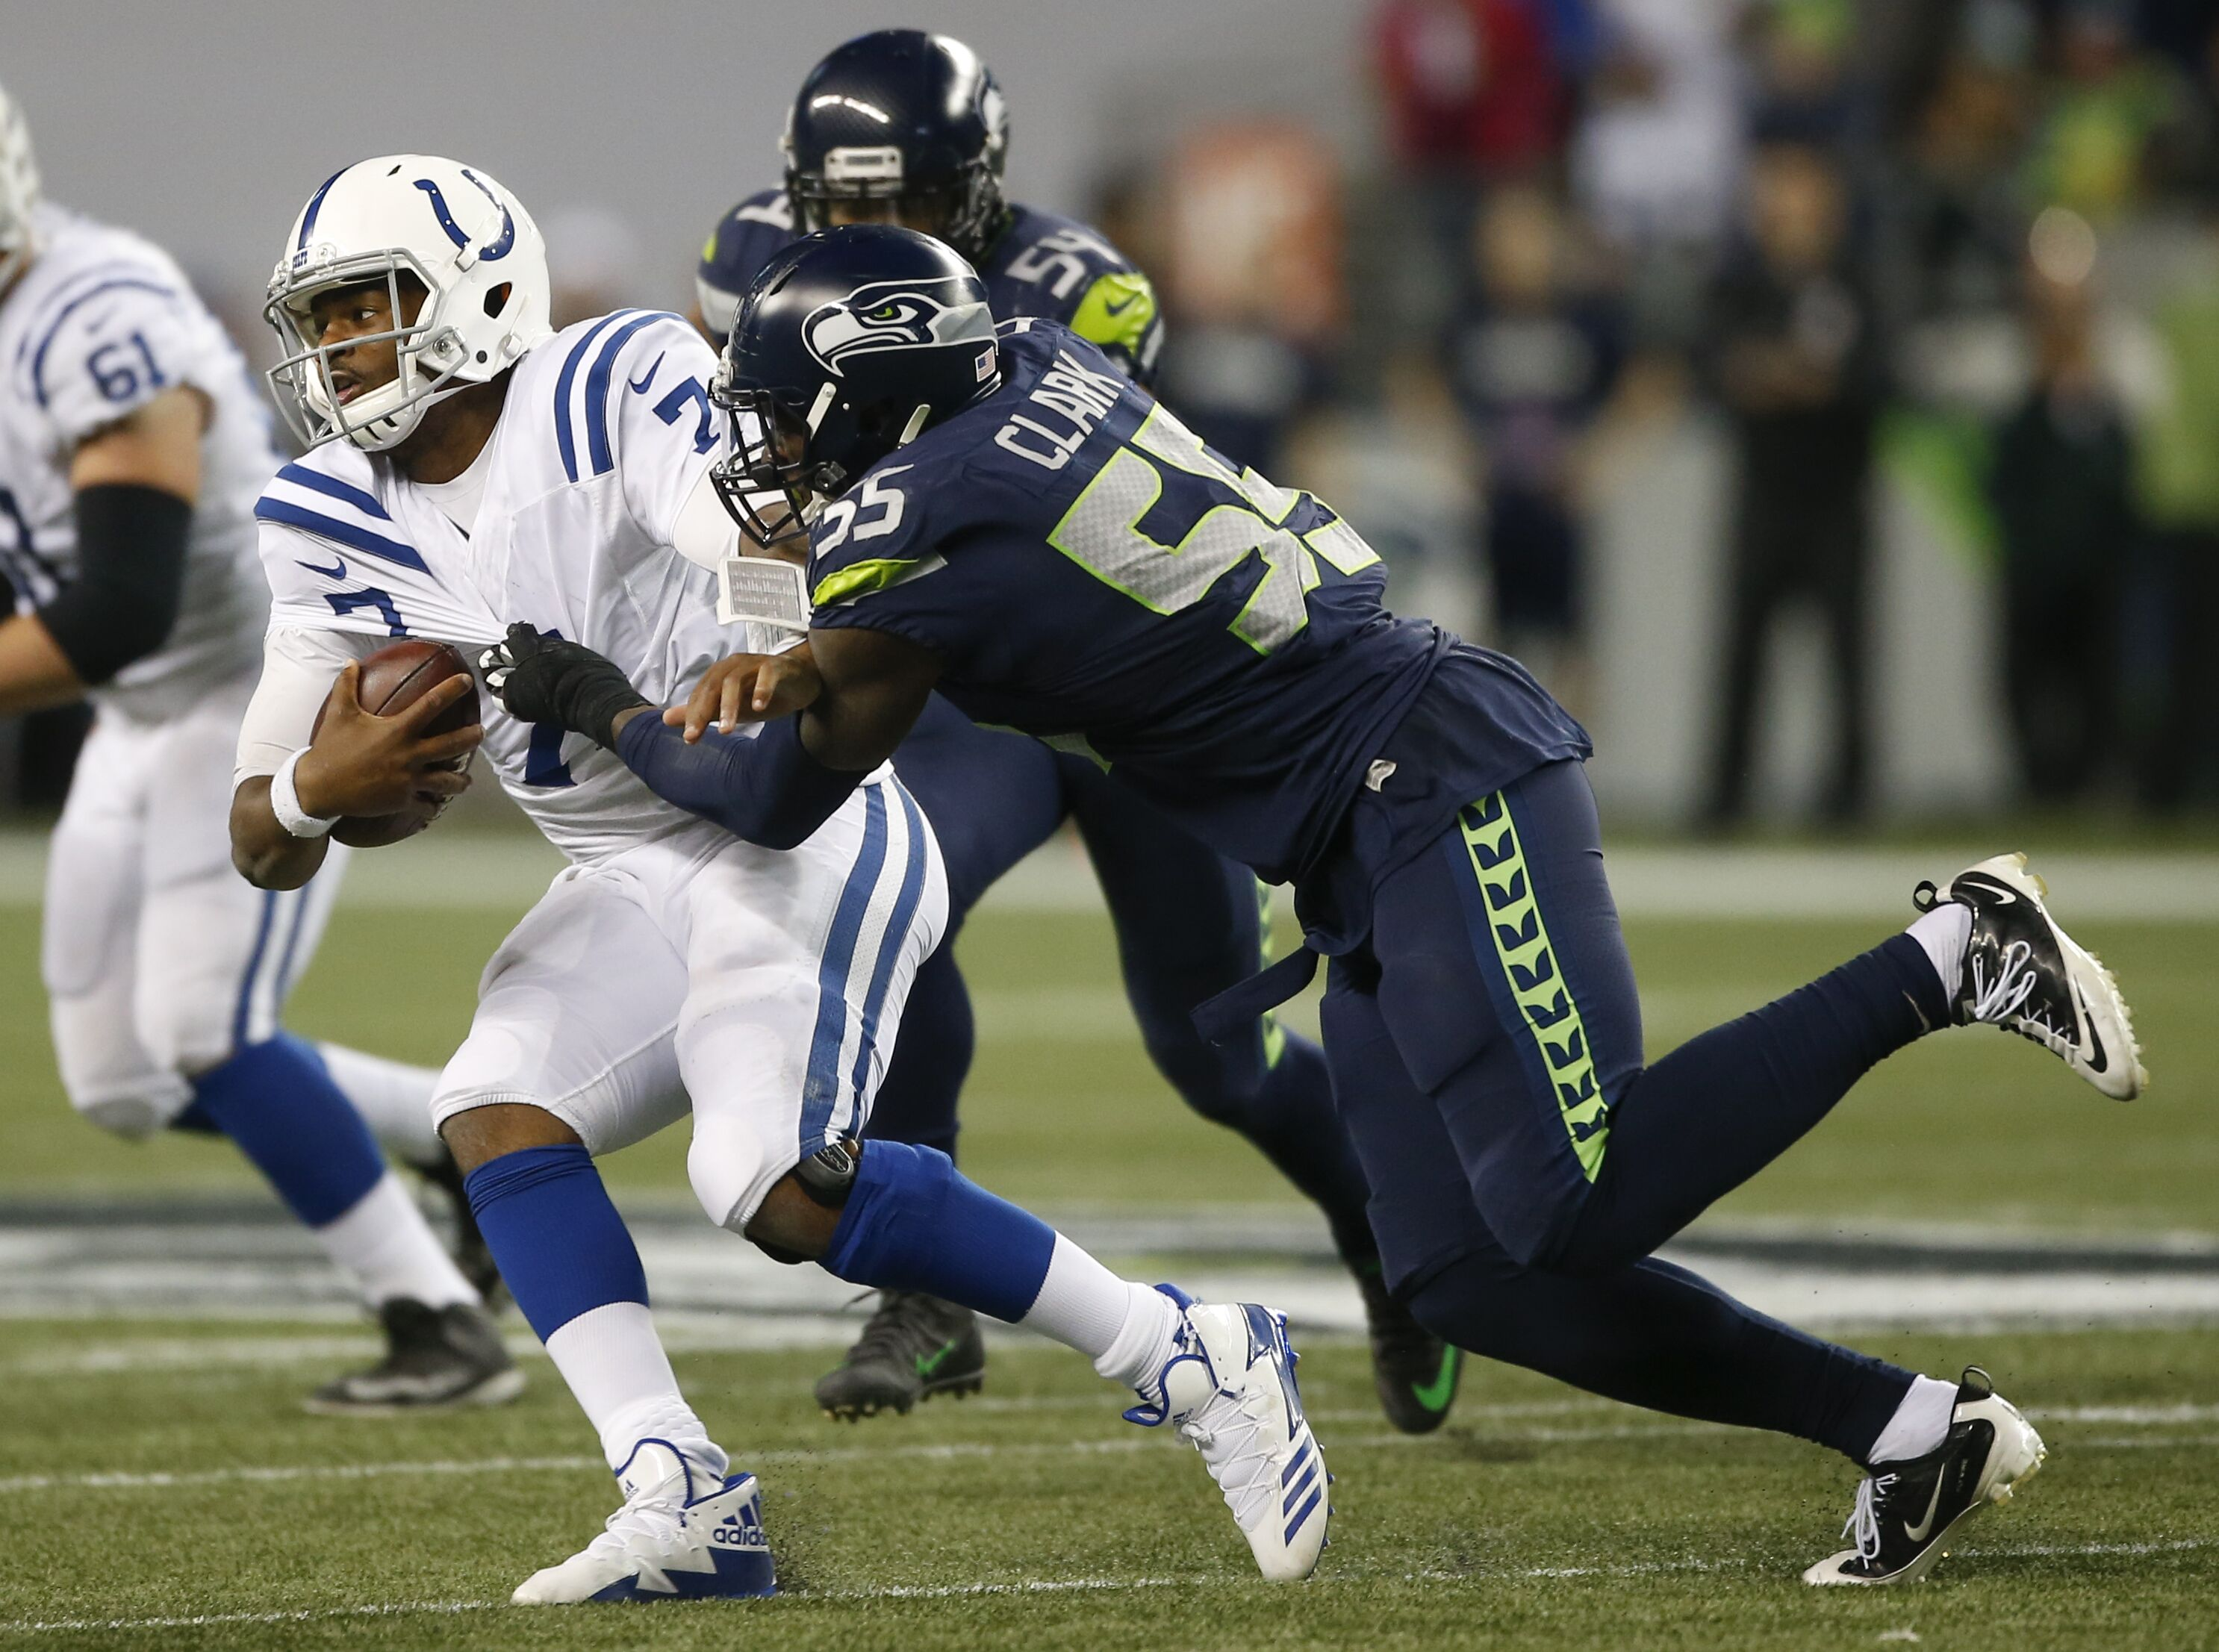 856464262-indianapolis-colts-v-seattle-seahawks.jpg